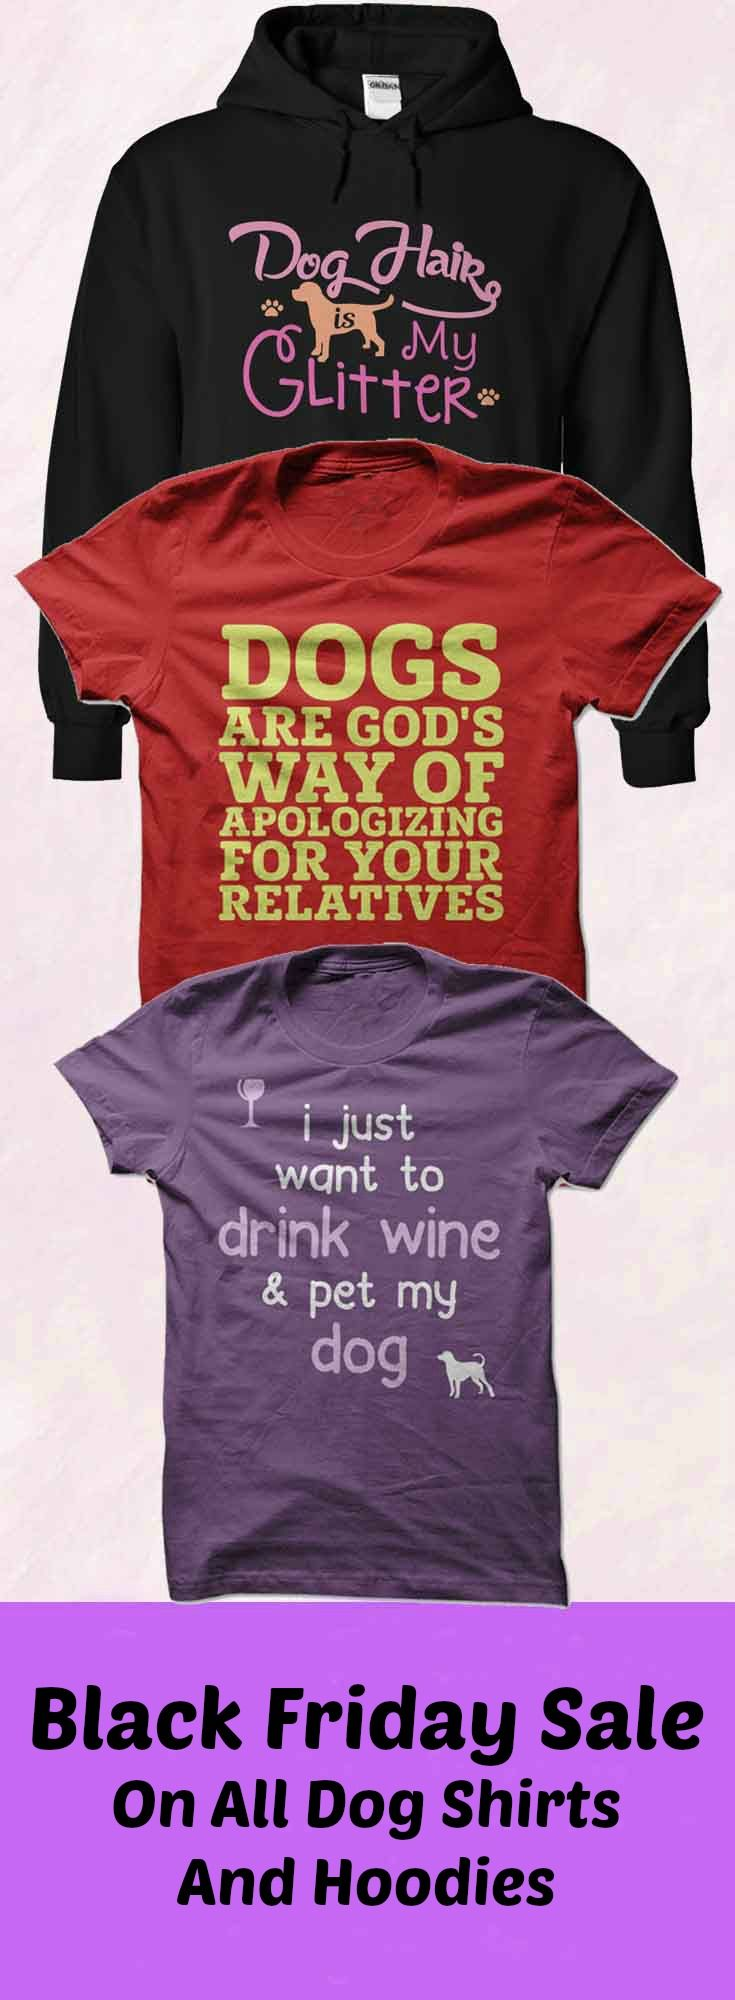 Design your own t-shirt for dogs - Shop Over Funny T Shirts Design Your Own Shirt As Unique As You Are T Shirt Design Screen Printing Dtg Shirt Printing